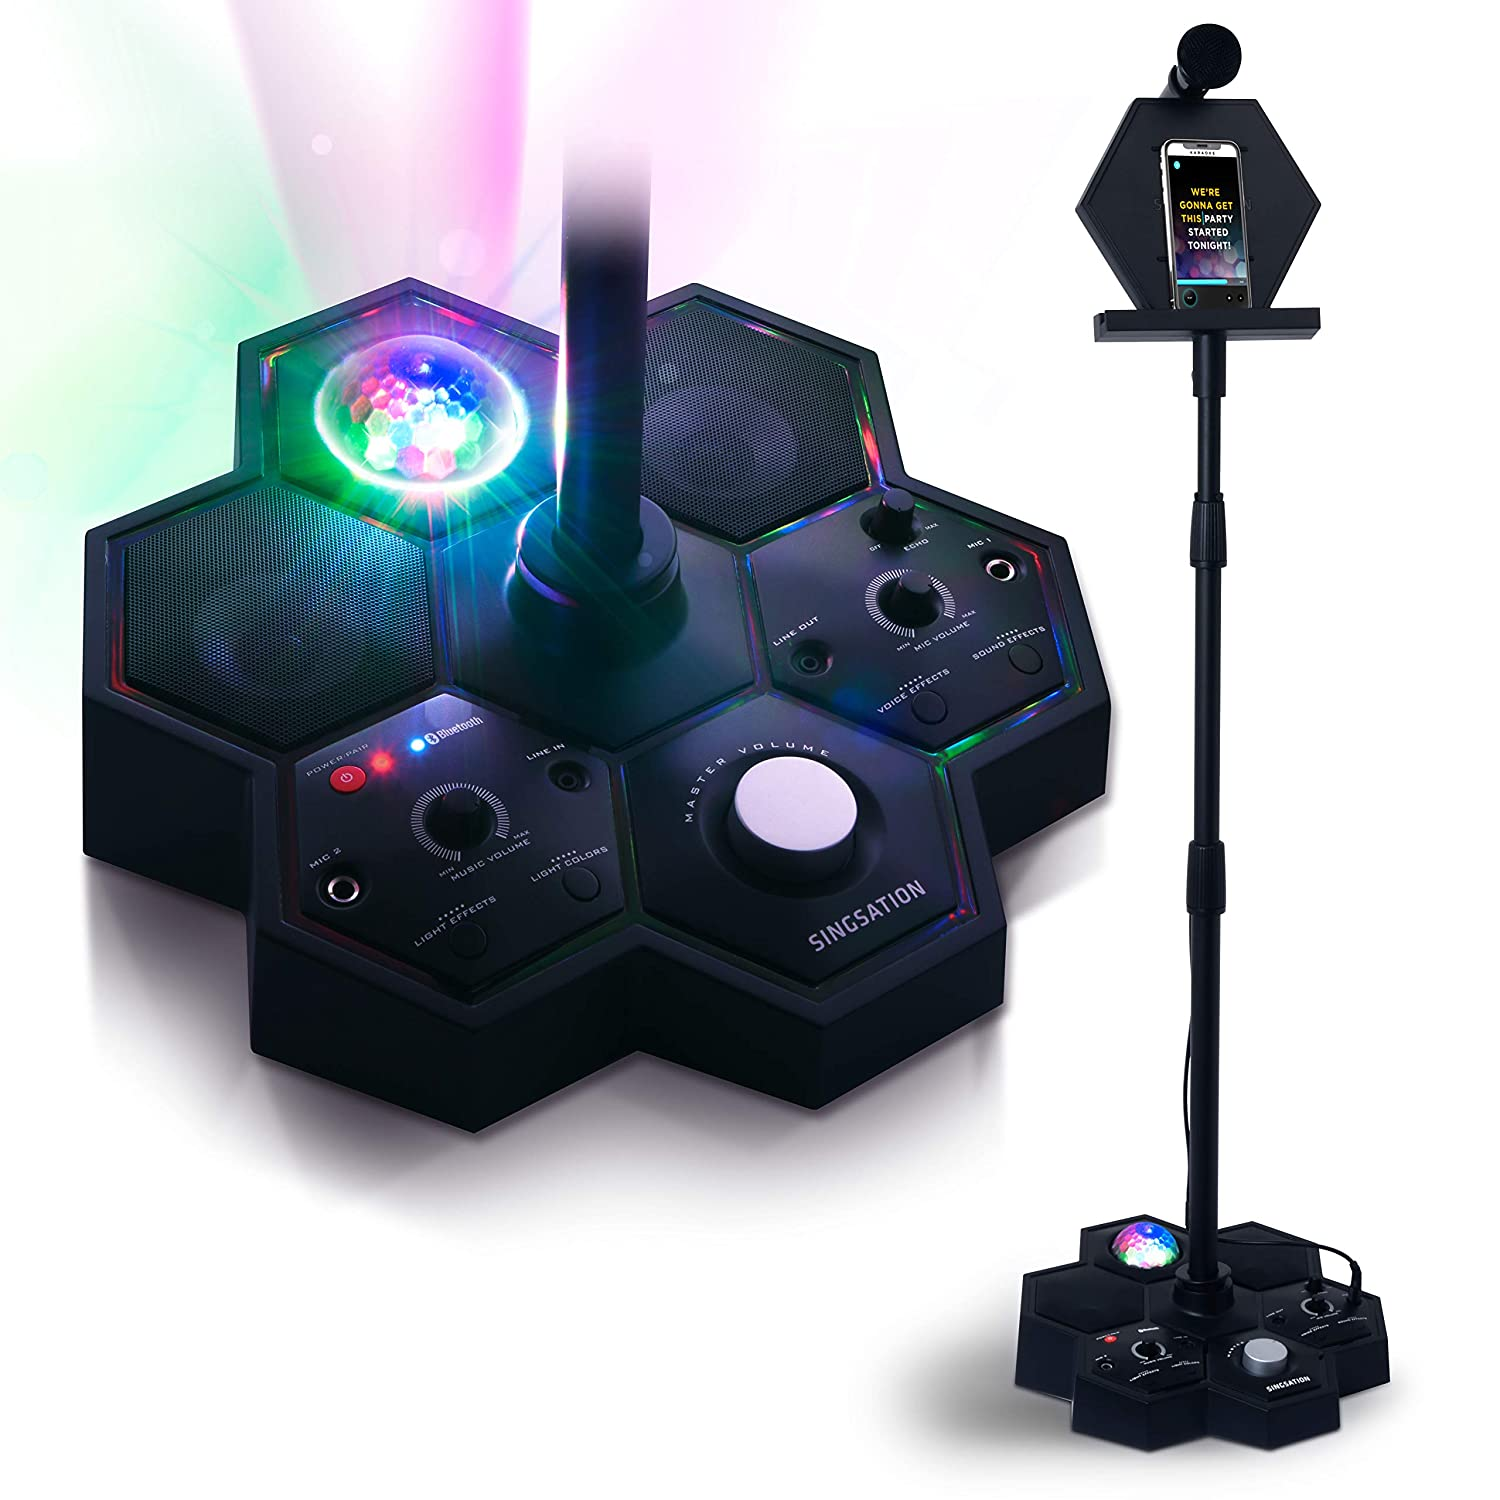 Singsation All-In-One Karaoke System & Party Machine - Performer Speaker w/Bluetooth Microphone Sing Stand - No CDs! - Kids or Adults Can Use YouTube for Favorite Karaoke Videos or Songs